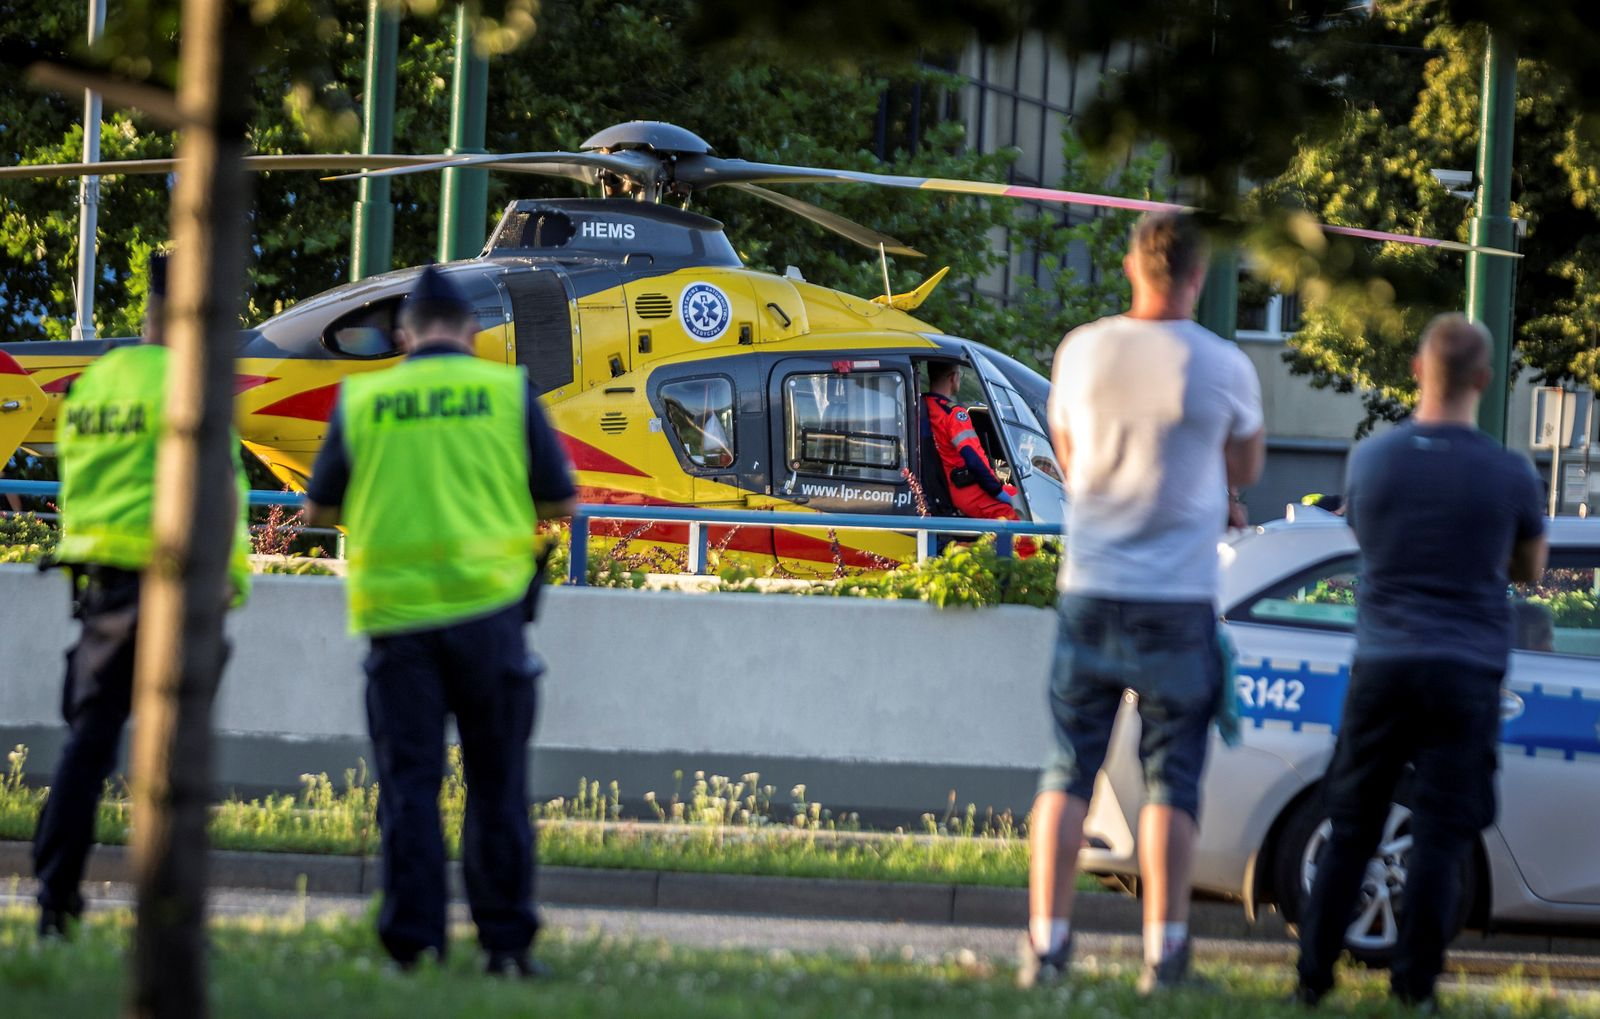 A rescue helicopter is seen on the site where Dutch cyclists Fabio Jakobsen and Dylan Groenewegen crashed in Katowice